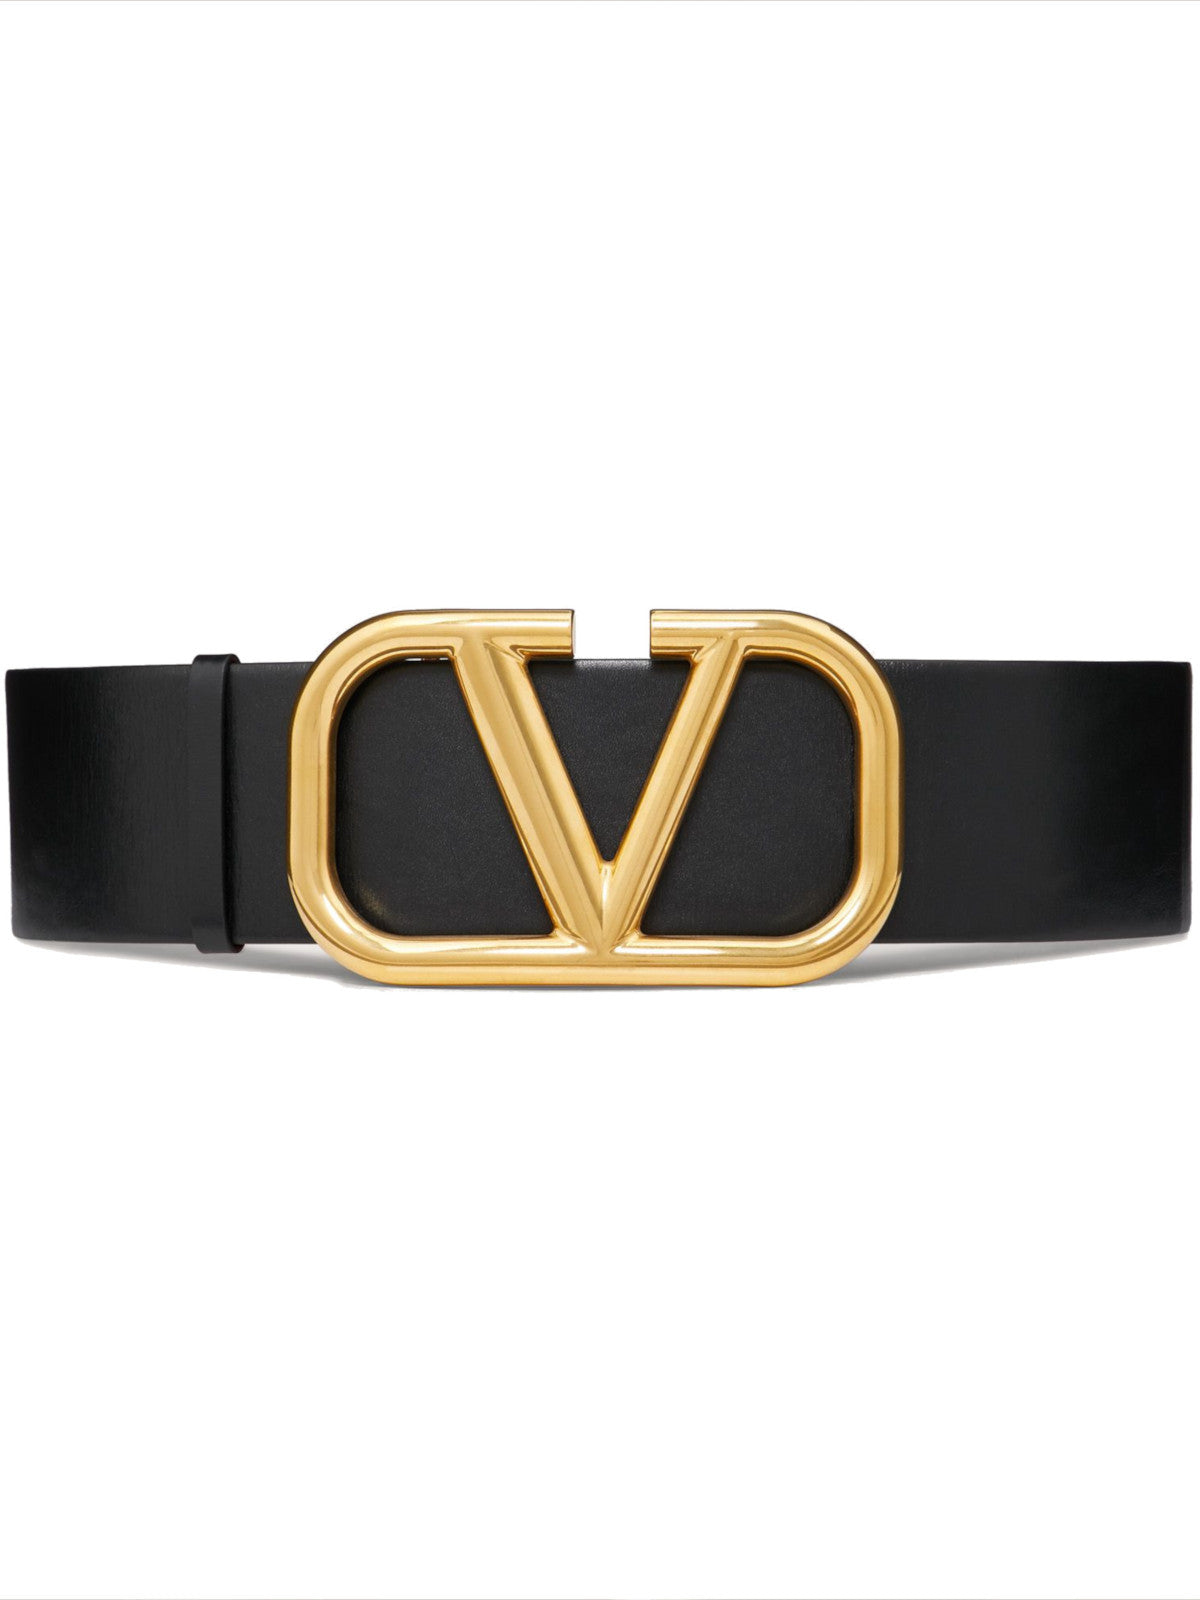 VLOGO REVERSIBLE BELT